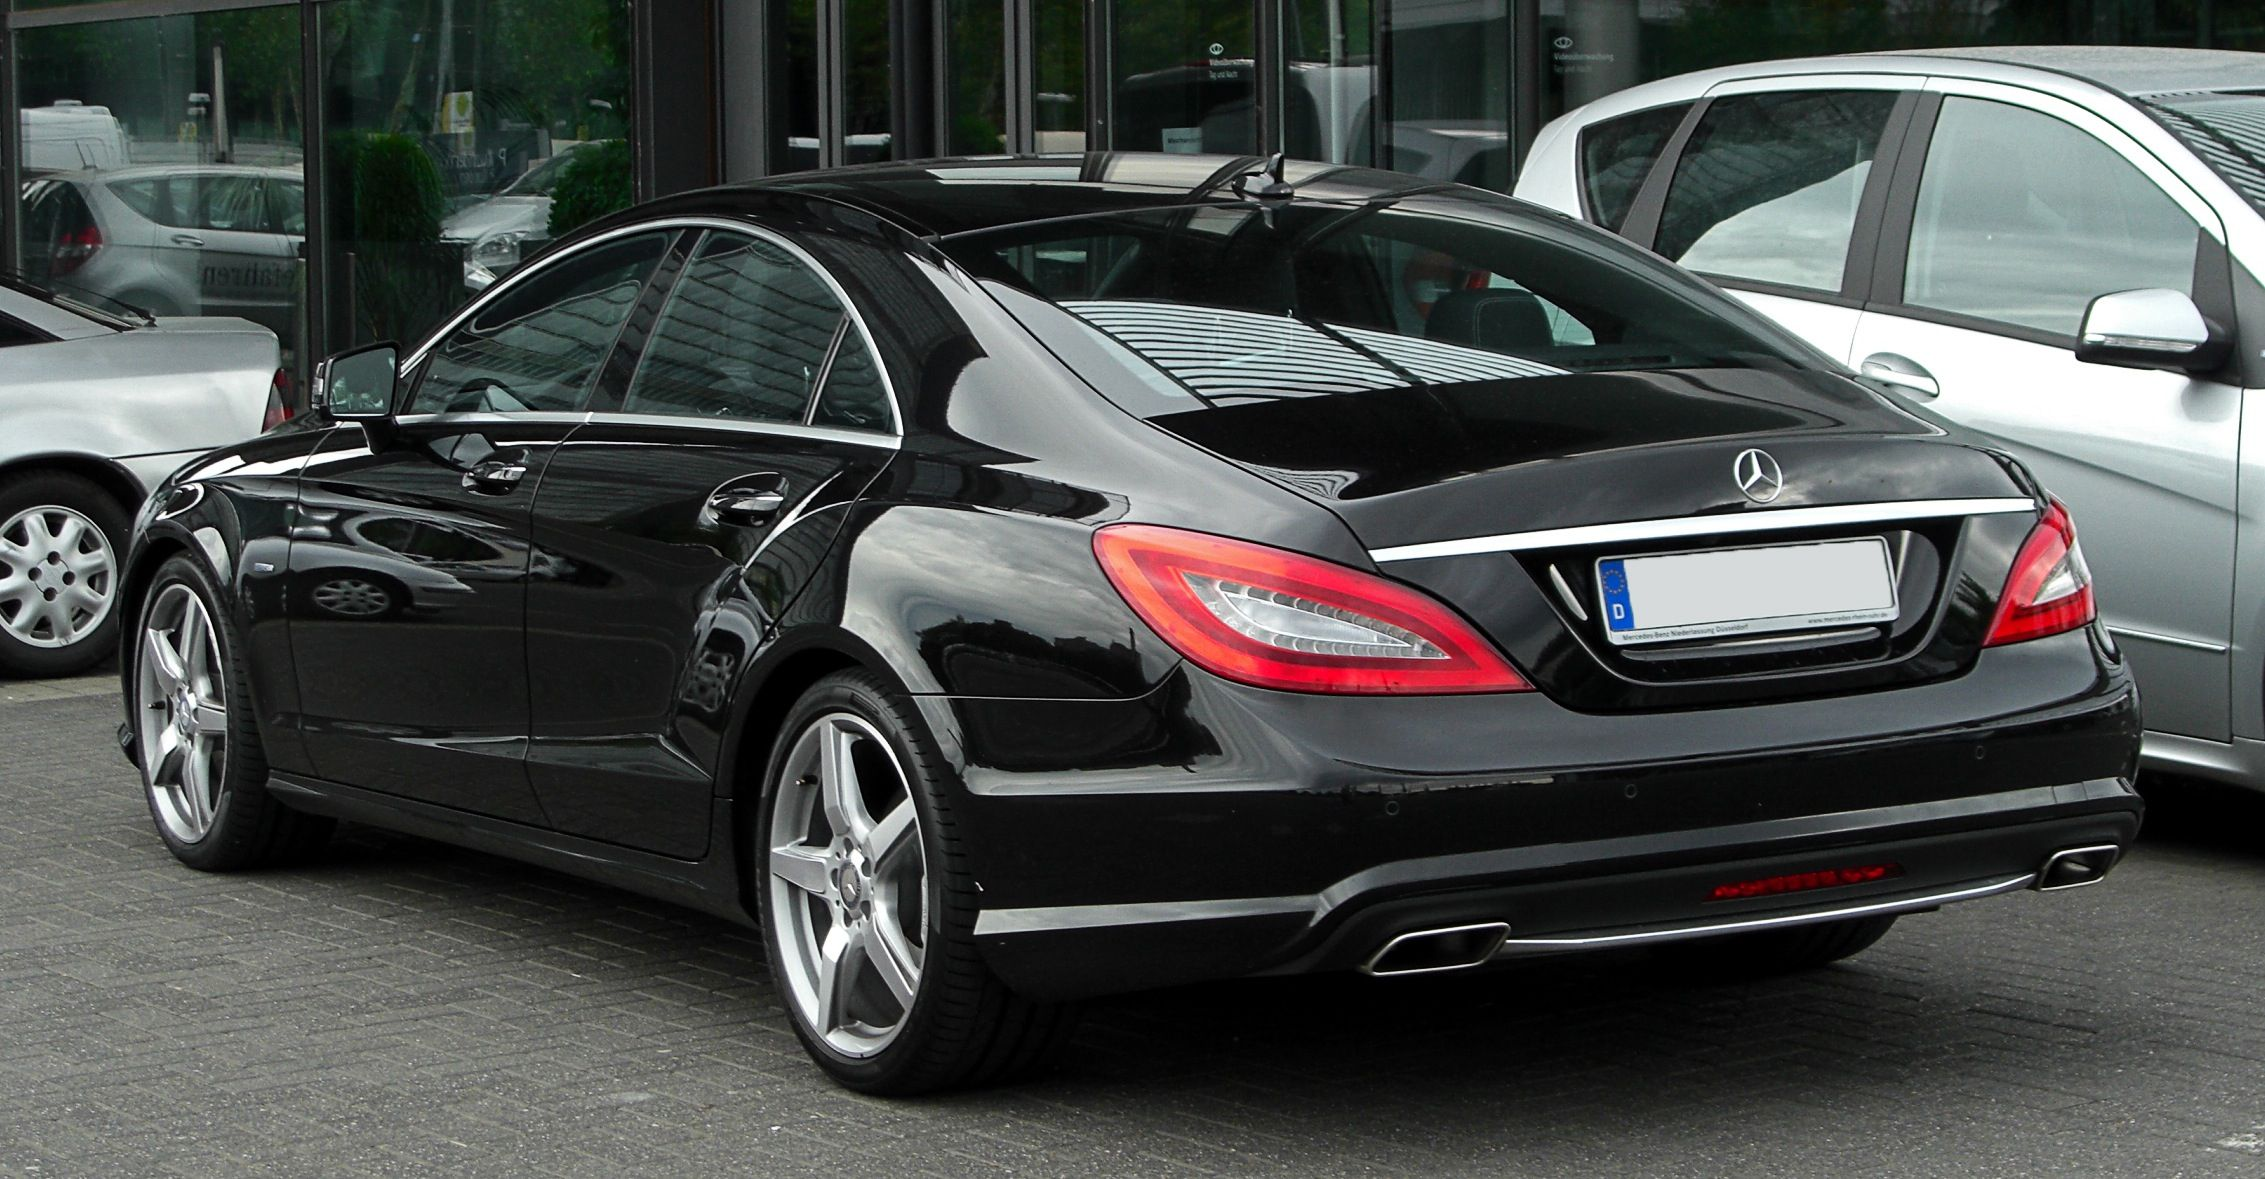 Mercedes Benz Cls Class Year 2014 With Images Black Mercedes